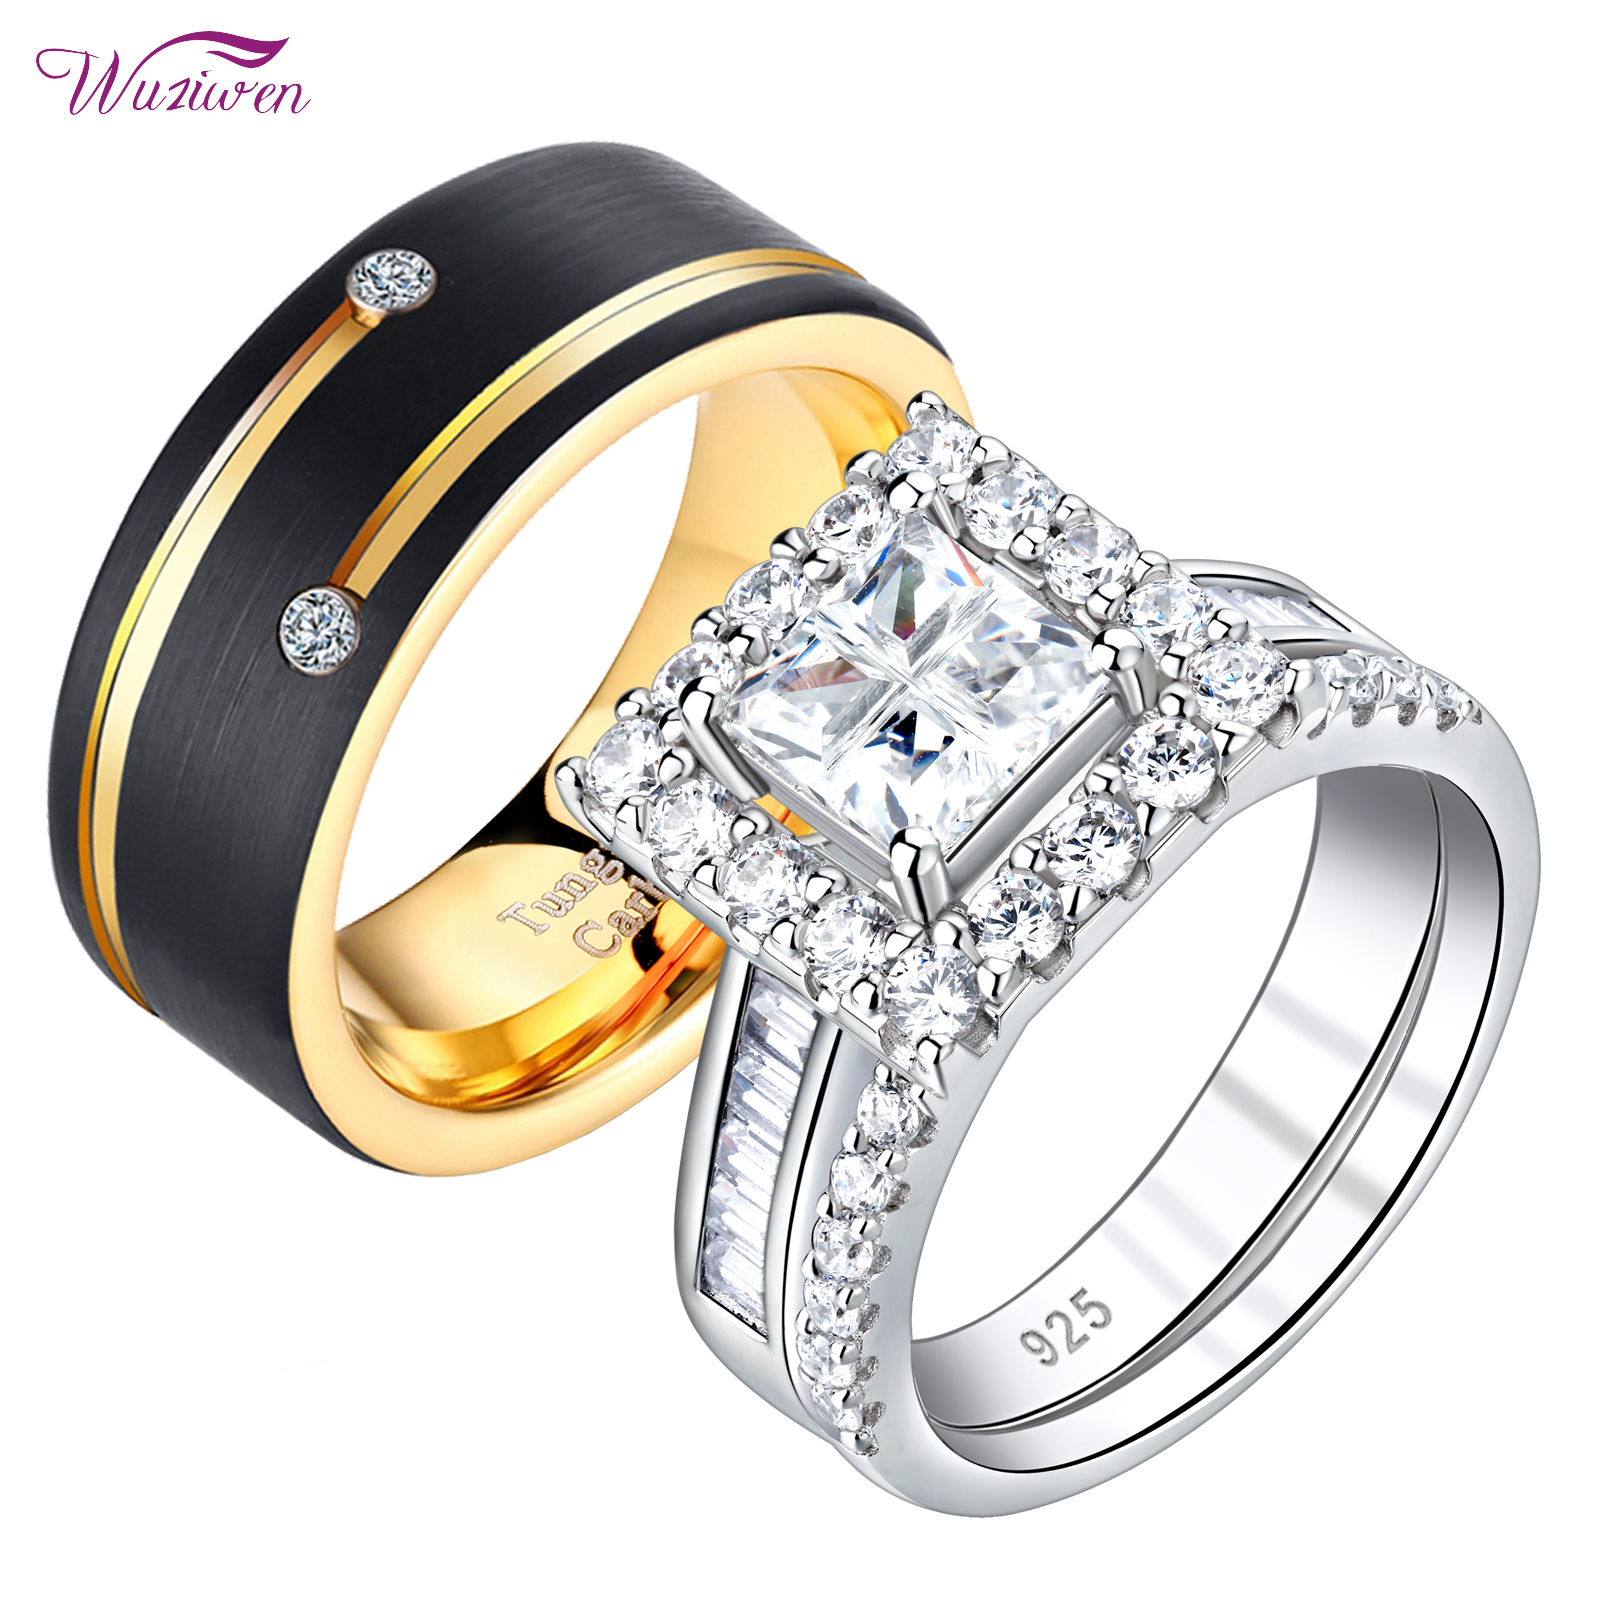 Stainless Steel 2 Color Celtic Infinity Comfort Fit Wedding Flat Band Ring with Clear CZ